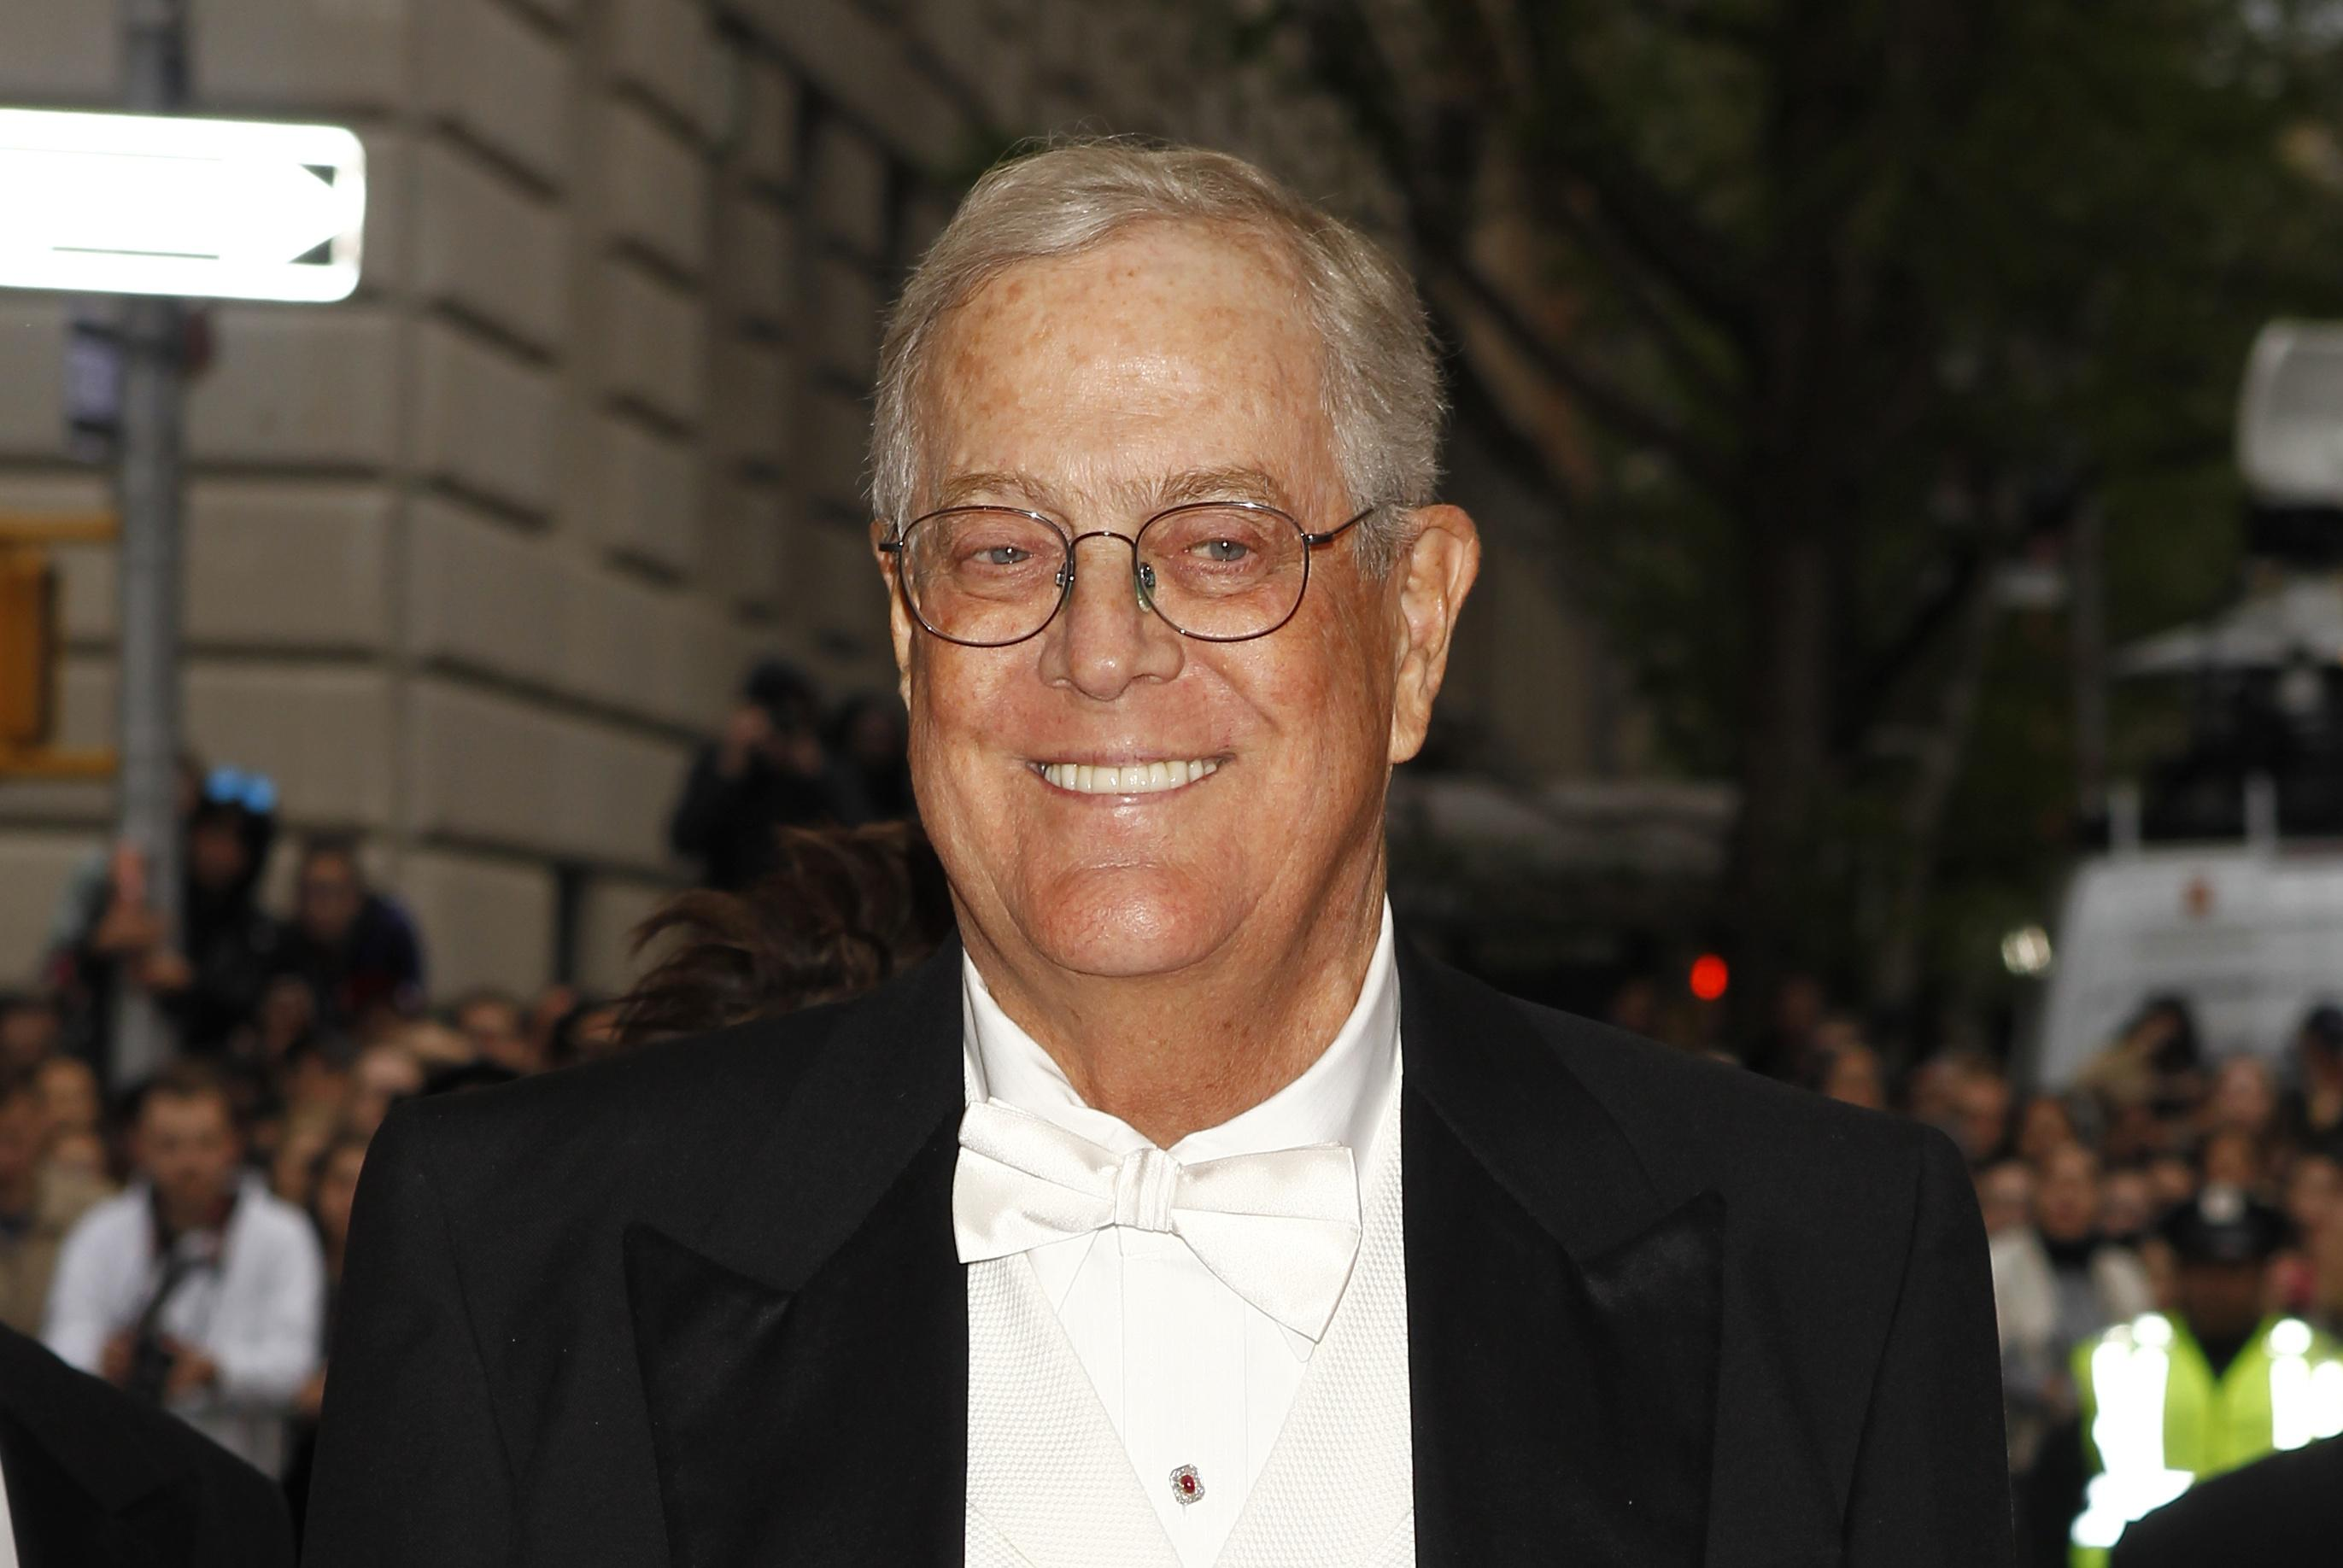 David Koch Stepping Down From Business and Political Activities